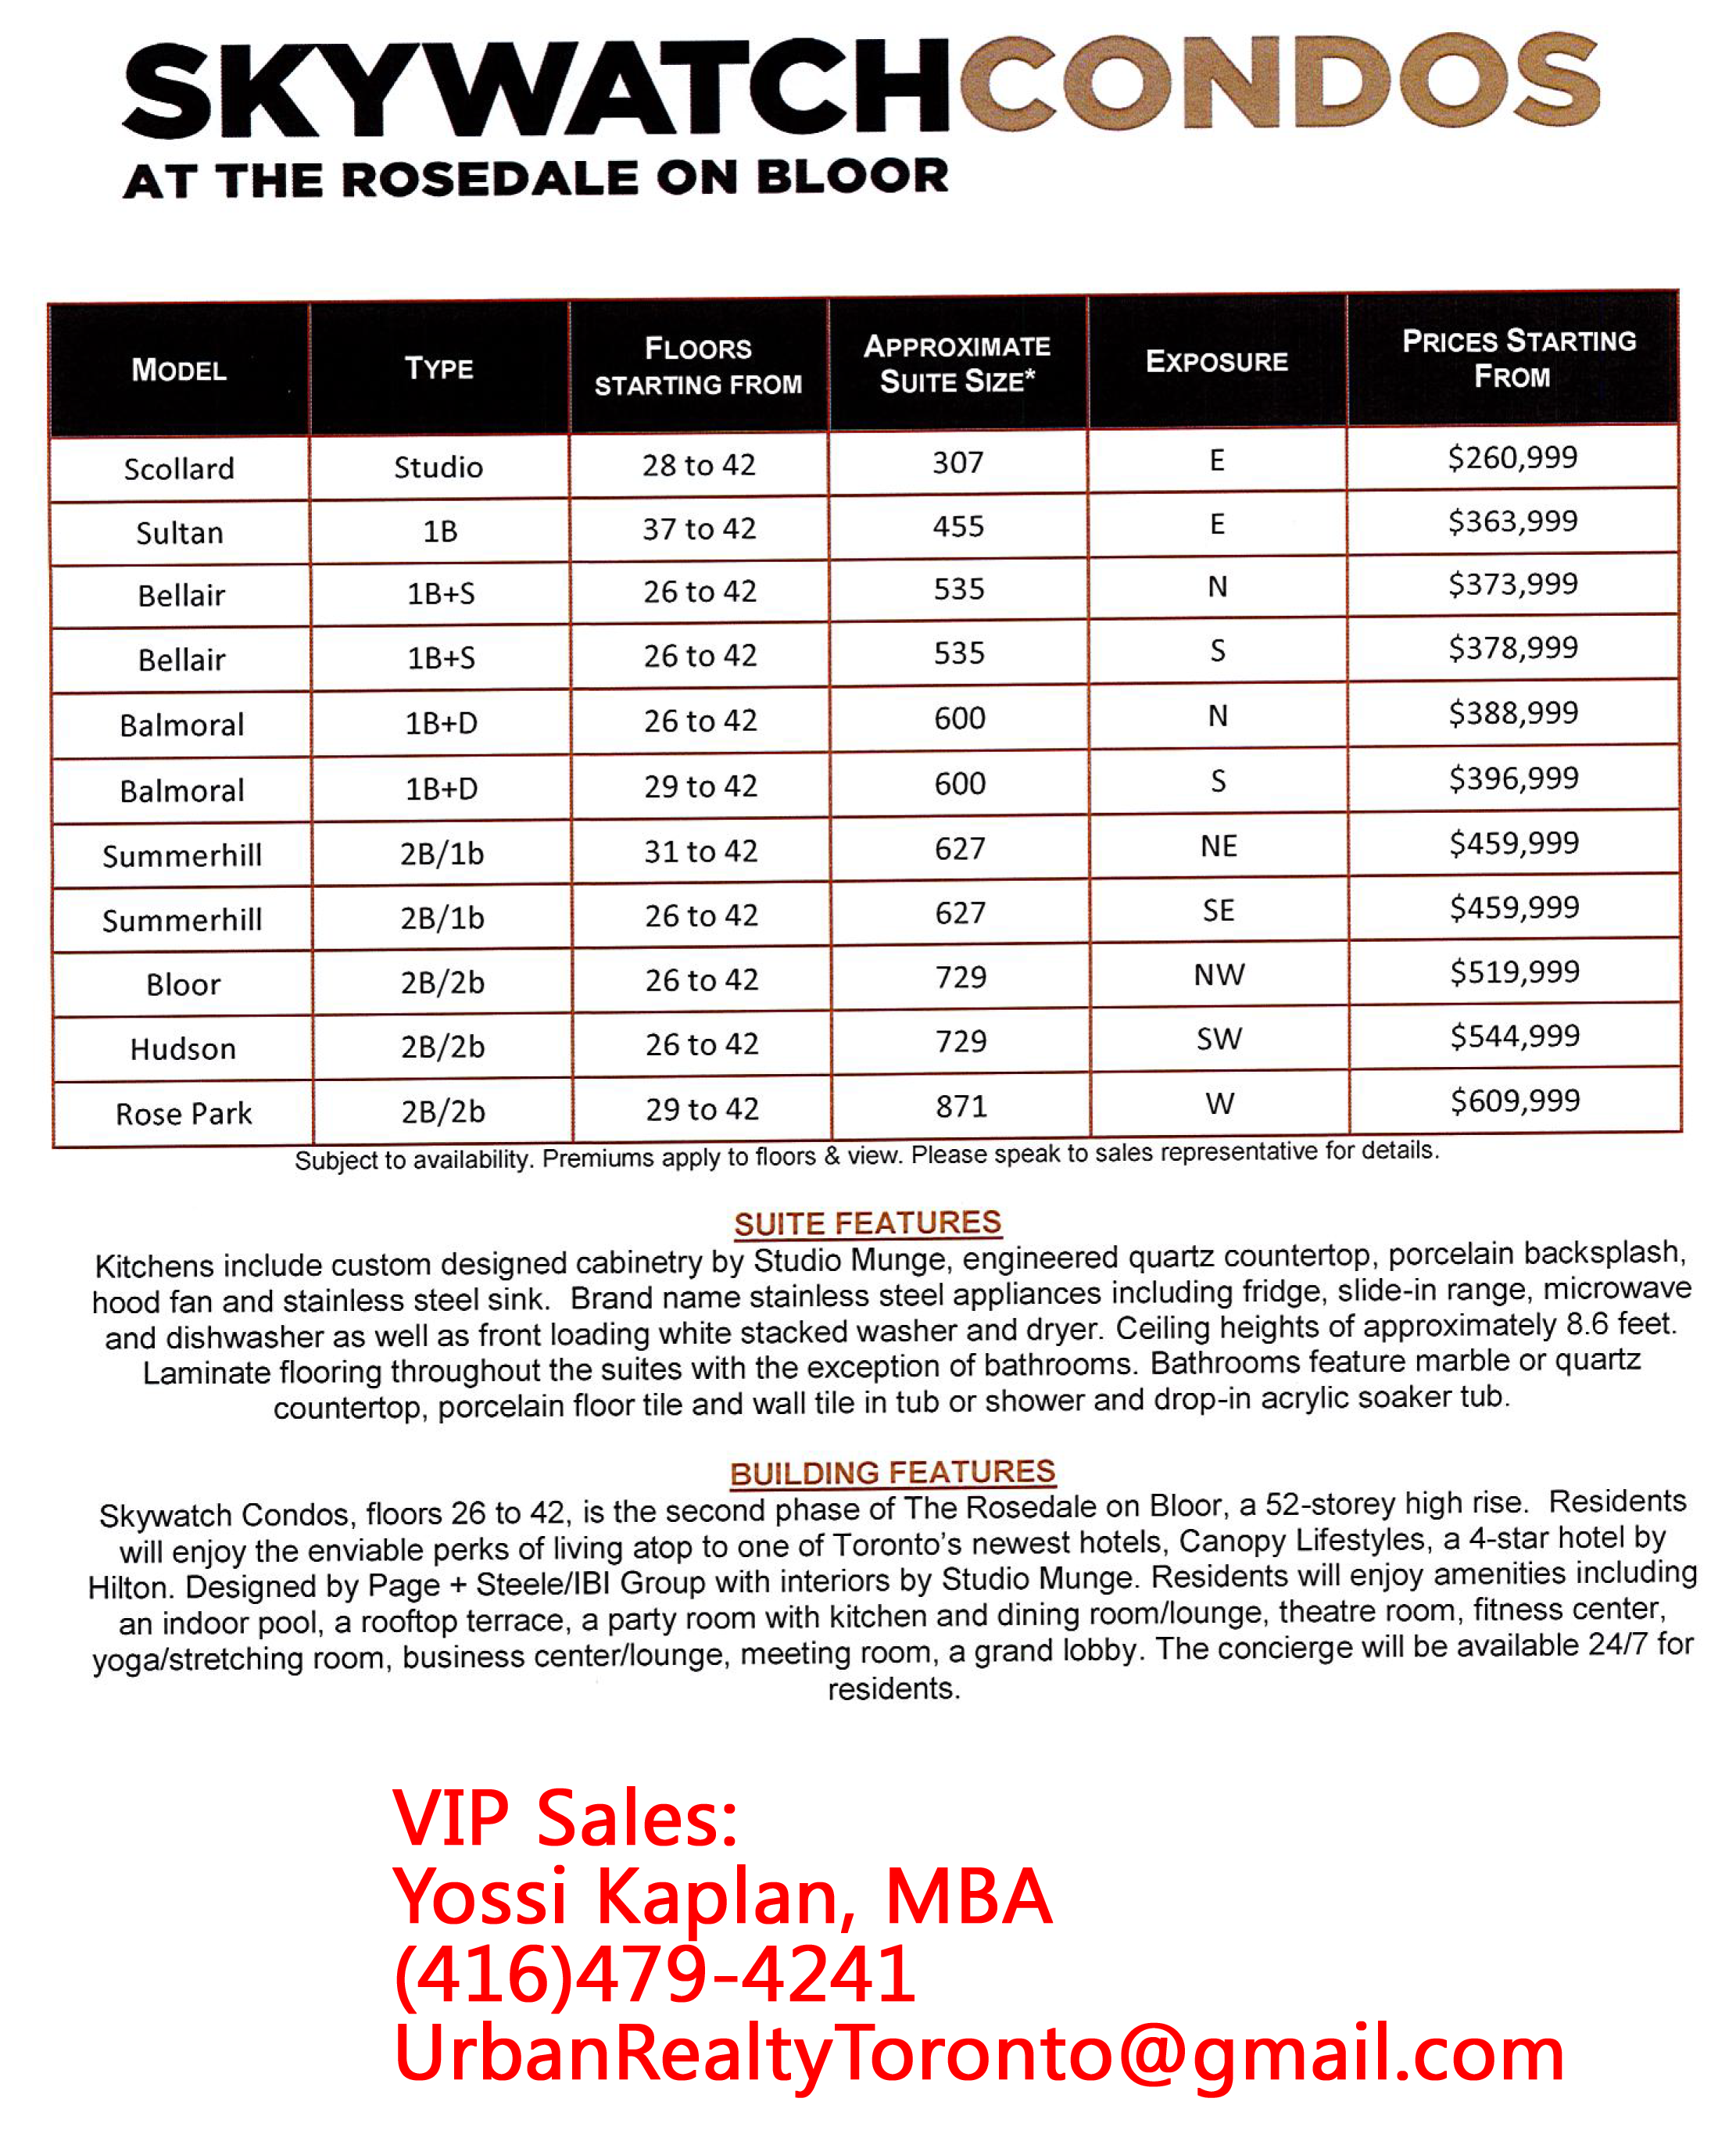 ROSEDALE VIP PRICES CONTACT YOSSI KAPLAN